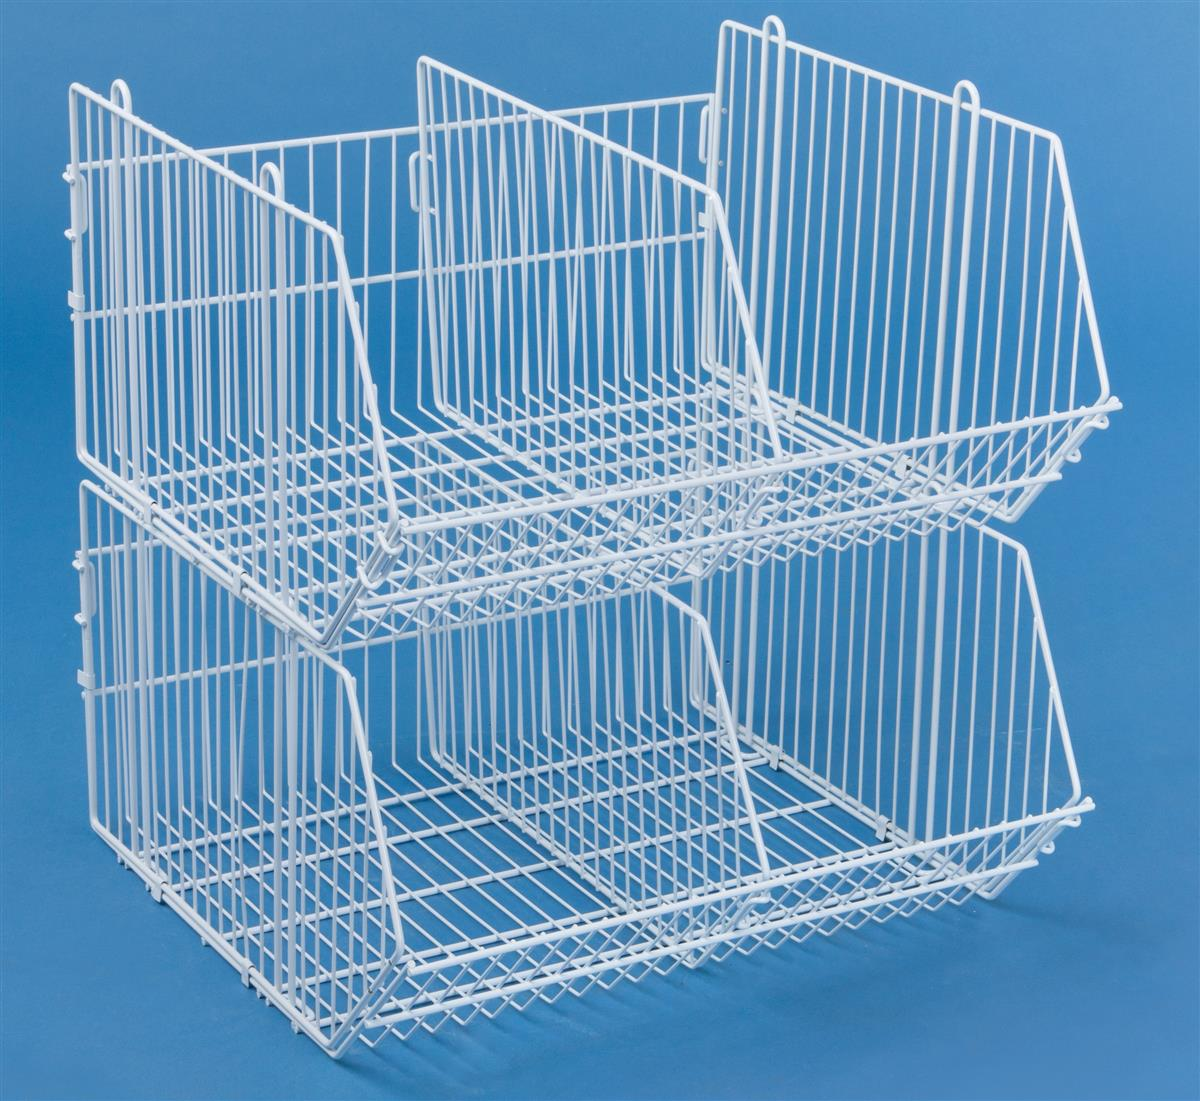 These Wire Storage Baskets Are Versatile Merchandise Racks